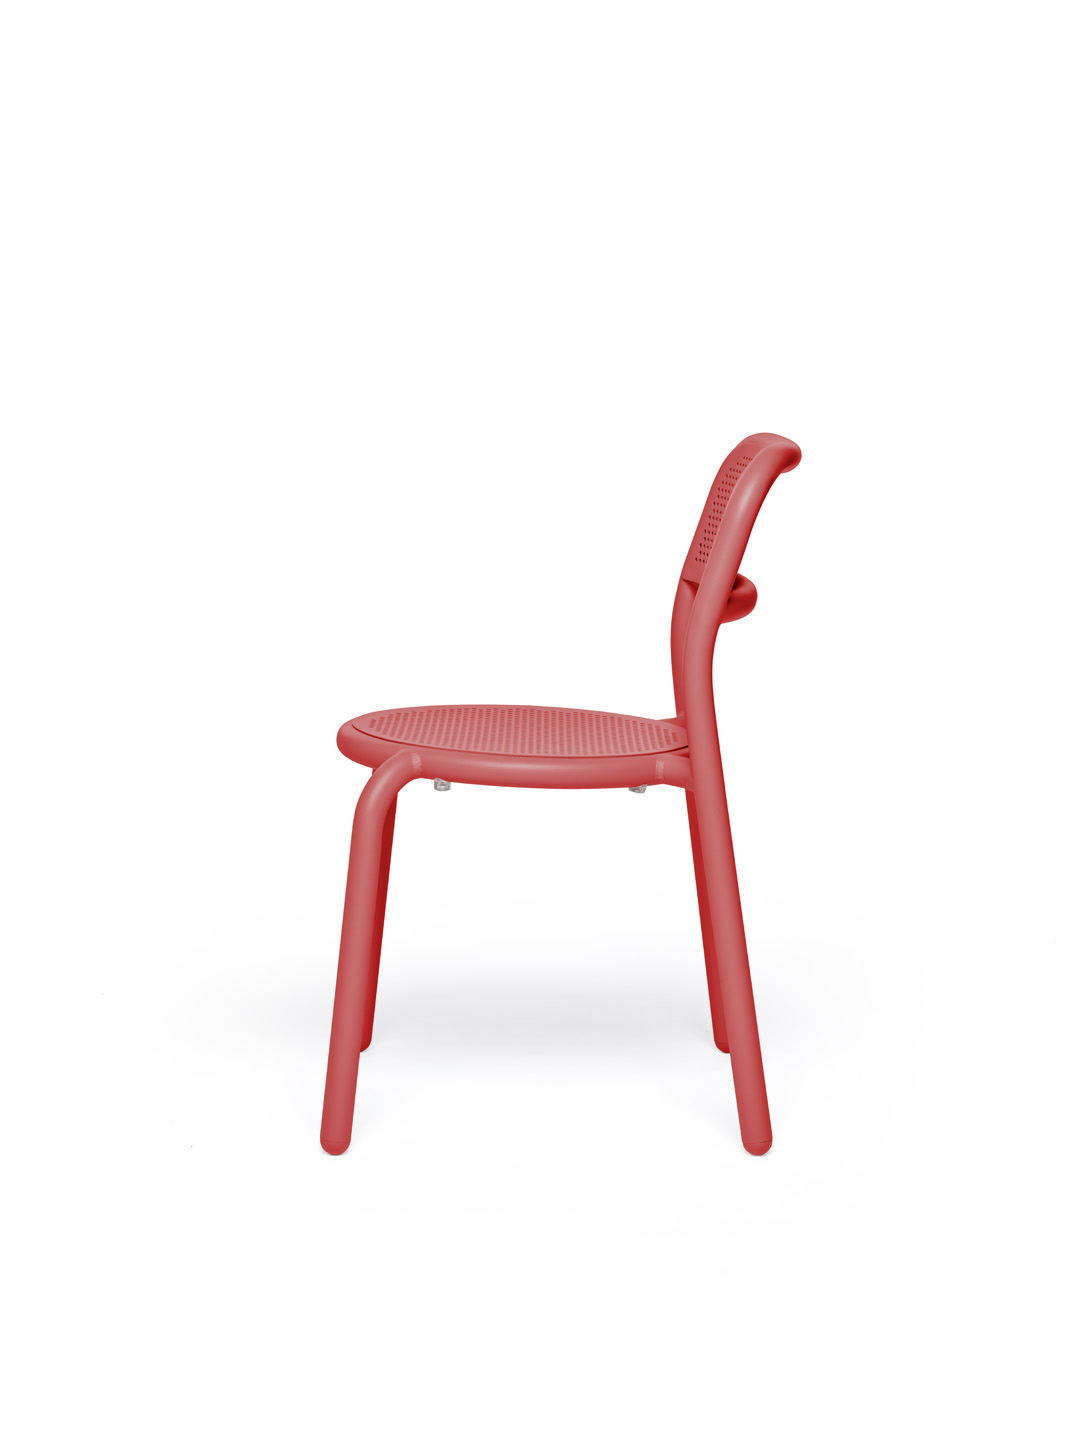 Fatboy Stuhl industrial red - Toni Chair Set